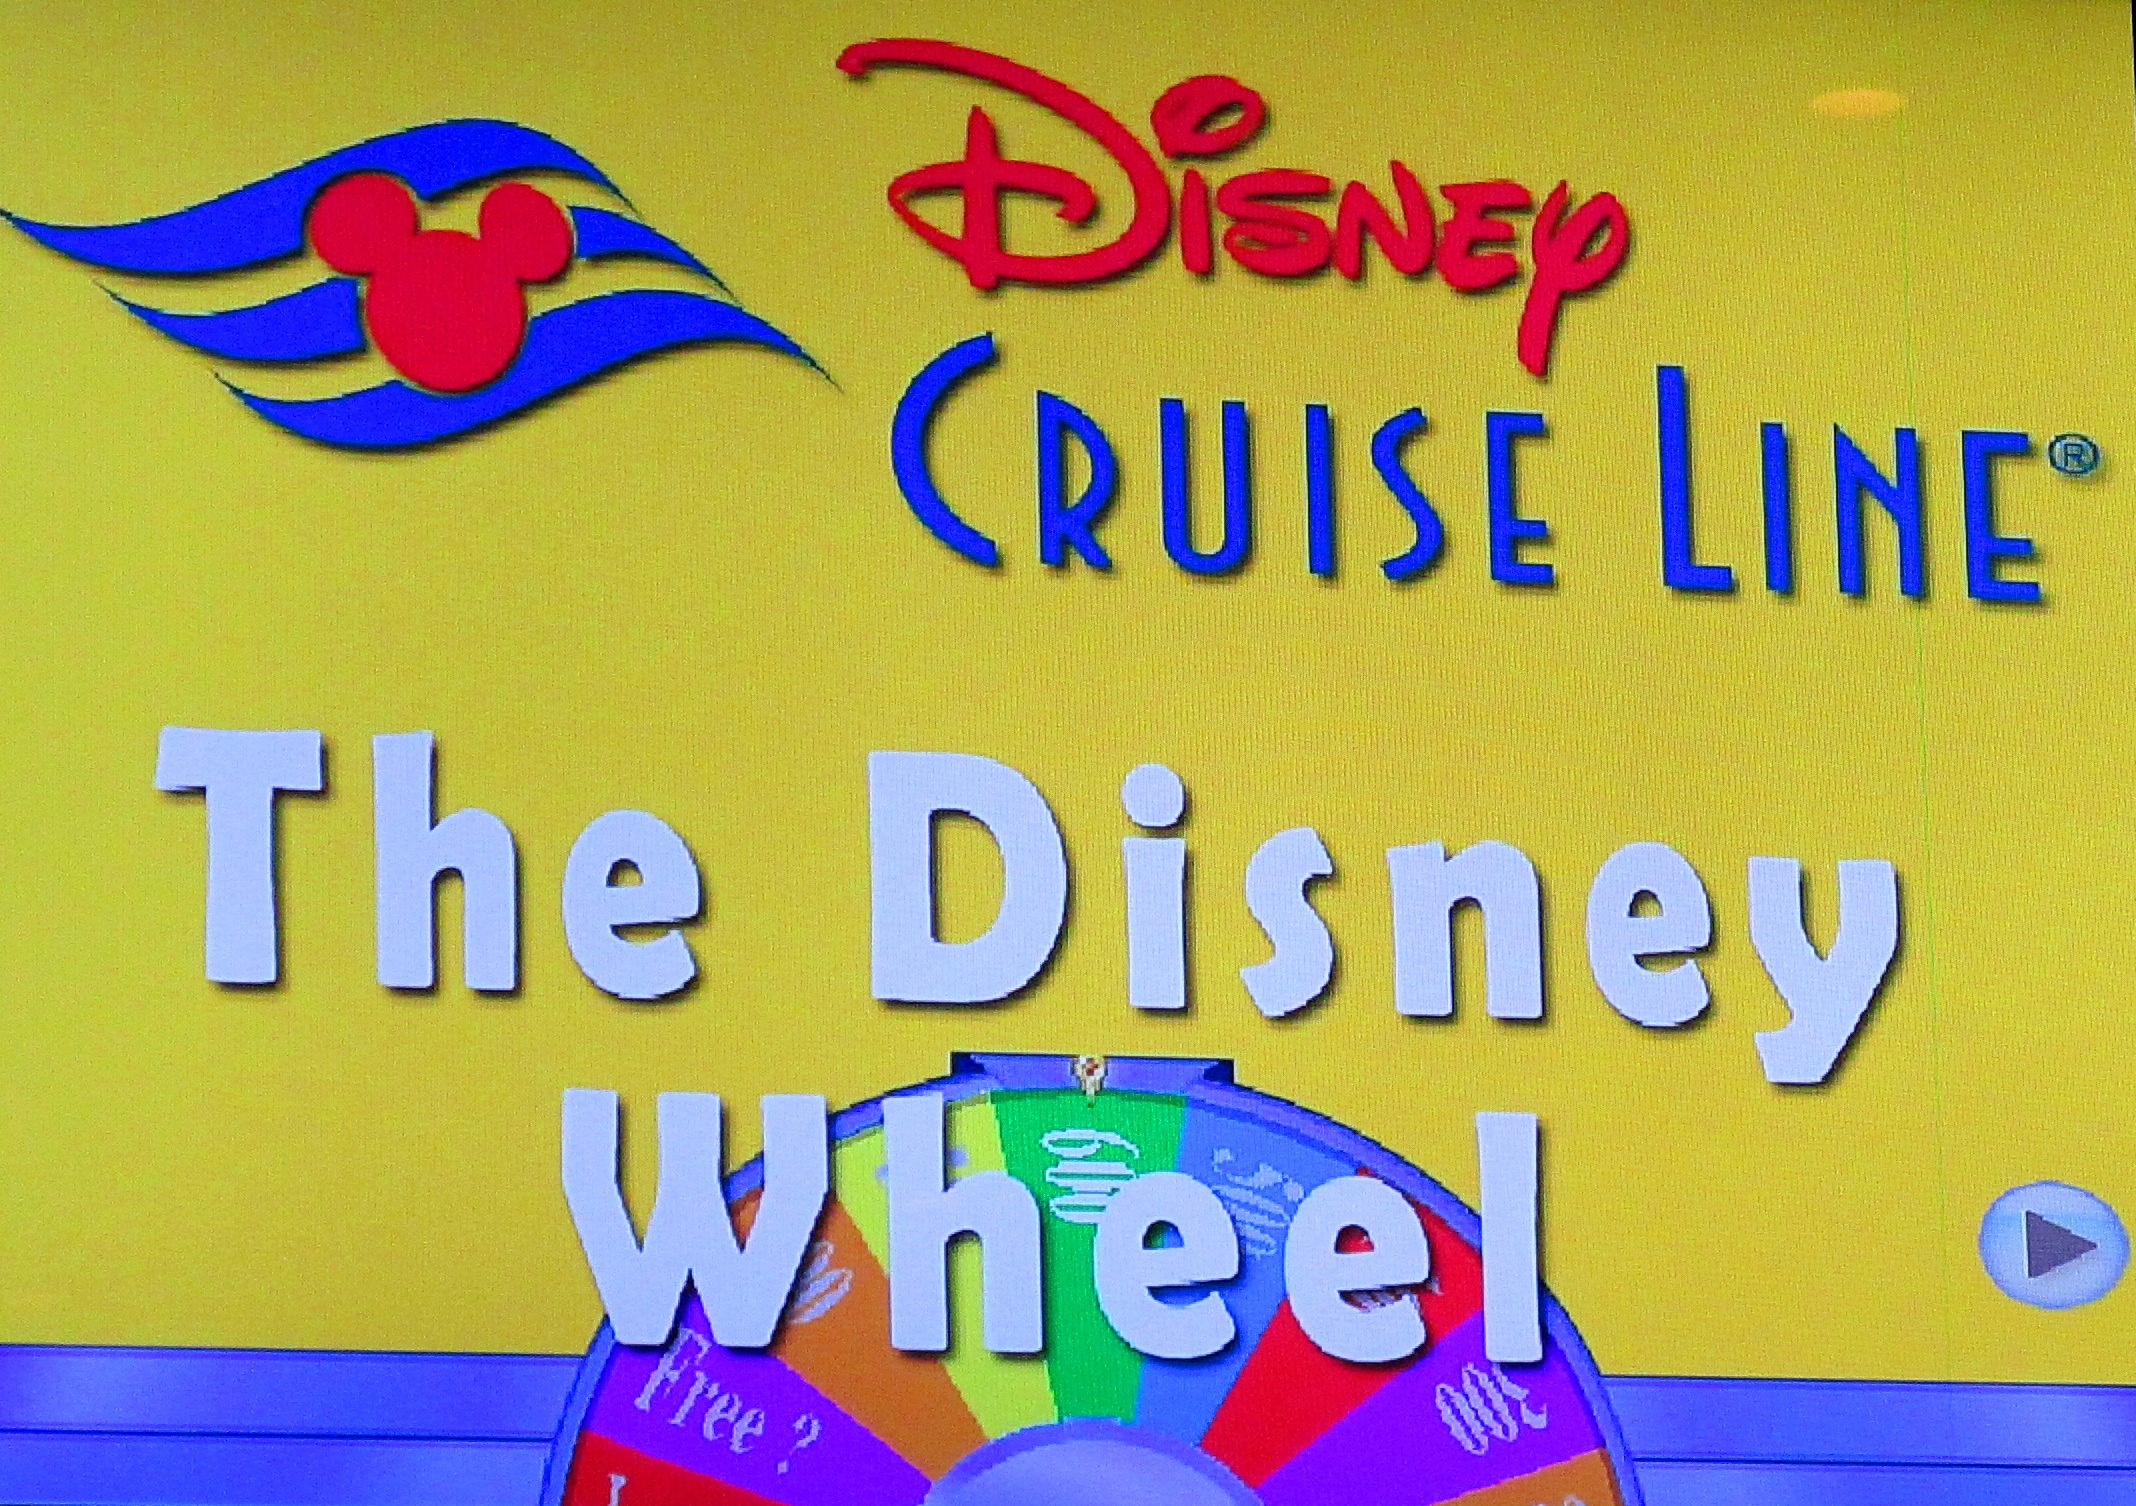 Wheel on Disney Wonder